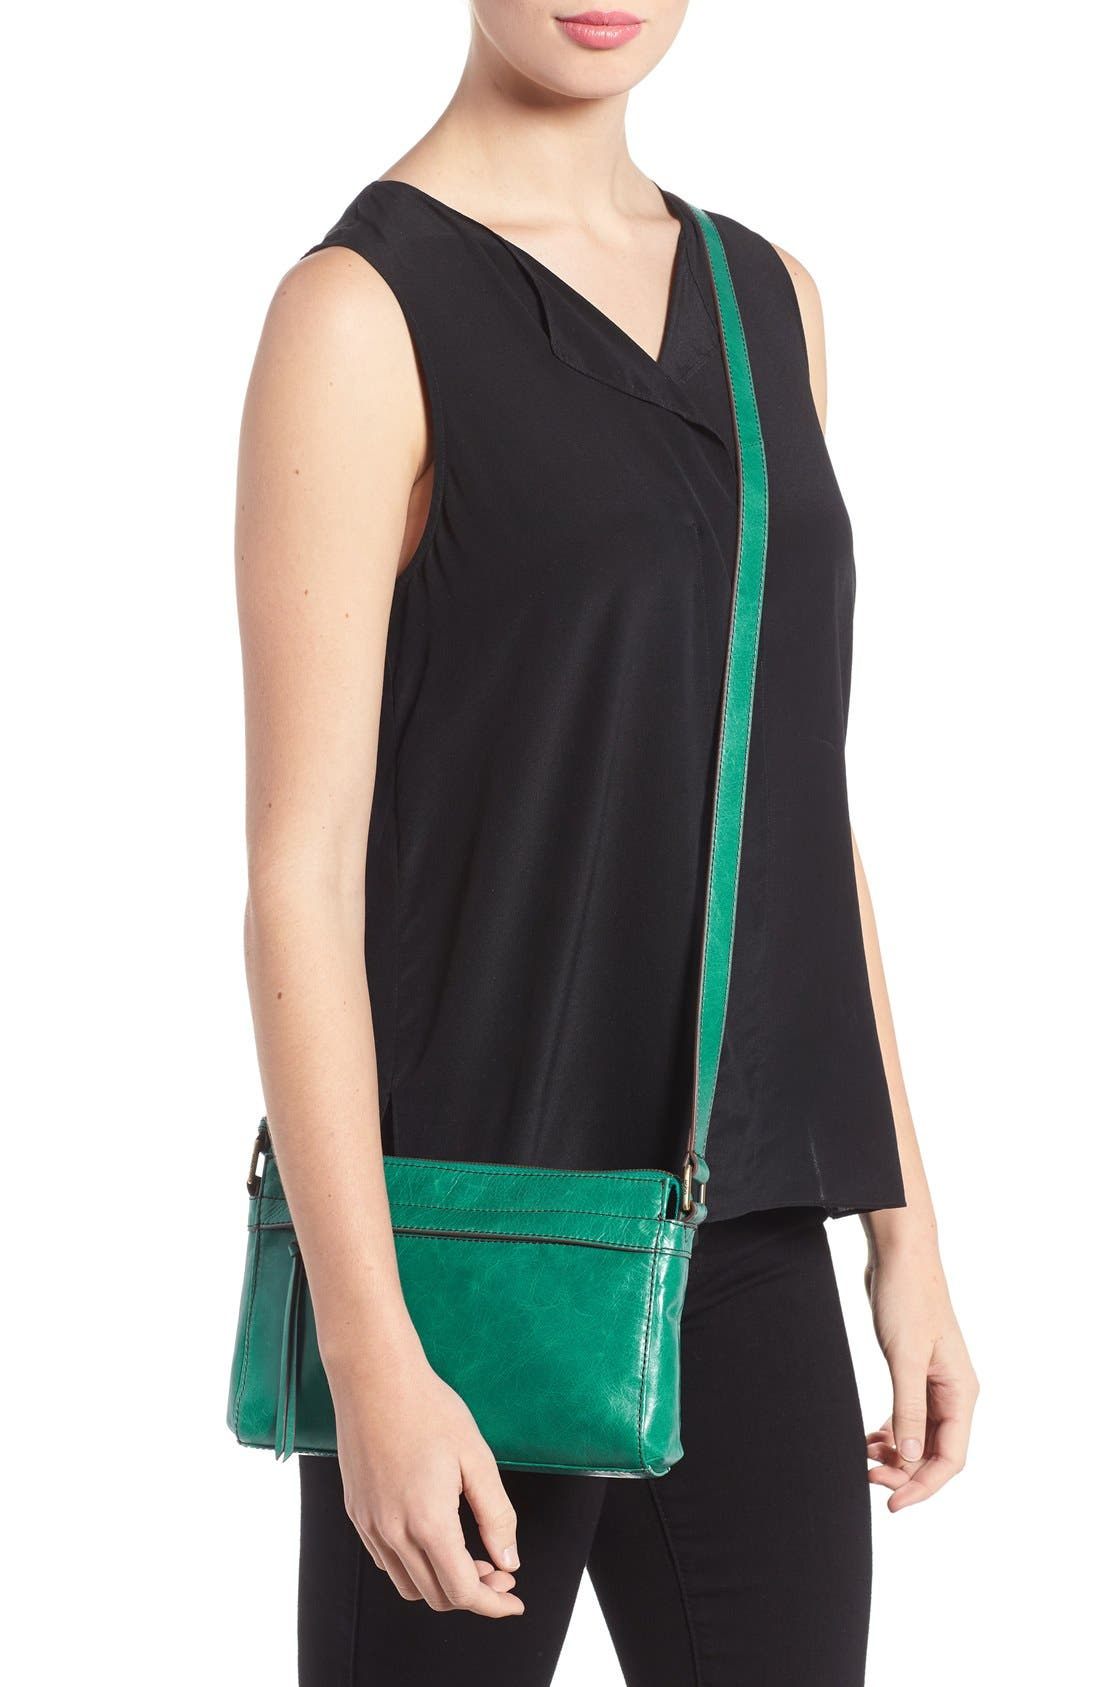 Tobey Leather Crossbody Bag,                             Alternate thumbnail 28, color,